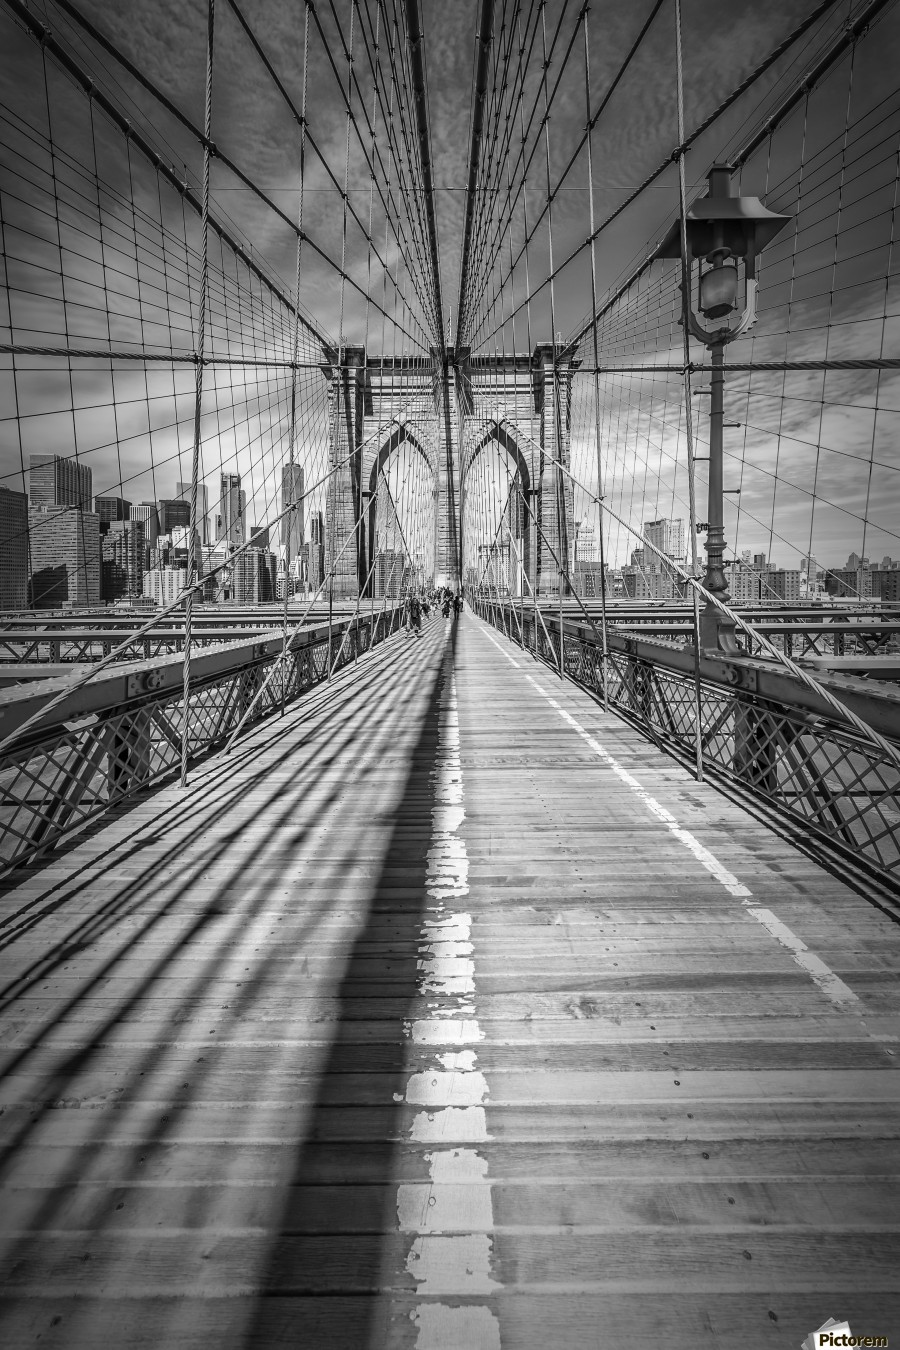 NEW YORK CITY Brooklyn Bridge , Melanie Viola , New York City, New York, America, american, Manhattan, NY, NYC, USA, US, United Staates, megacity, architecture, attraction, famous, landmark, popular, sight, Sightseeing, skyline, skyscraper, downtown, Brooklyn Bridge, bridge, cityscape, urban, upright, vertical, black, white, Vignette, detail, steel cable, classical, black and white,